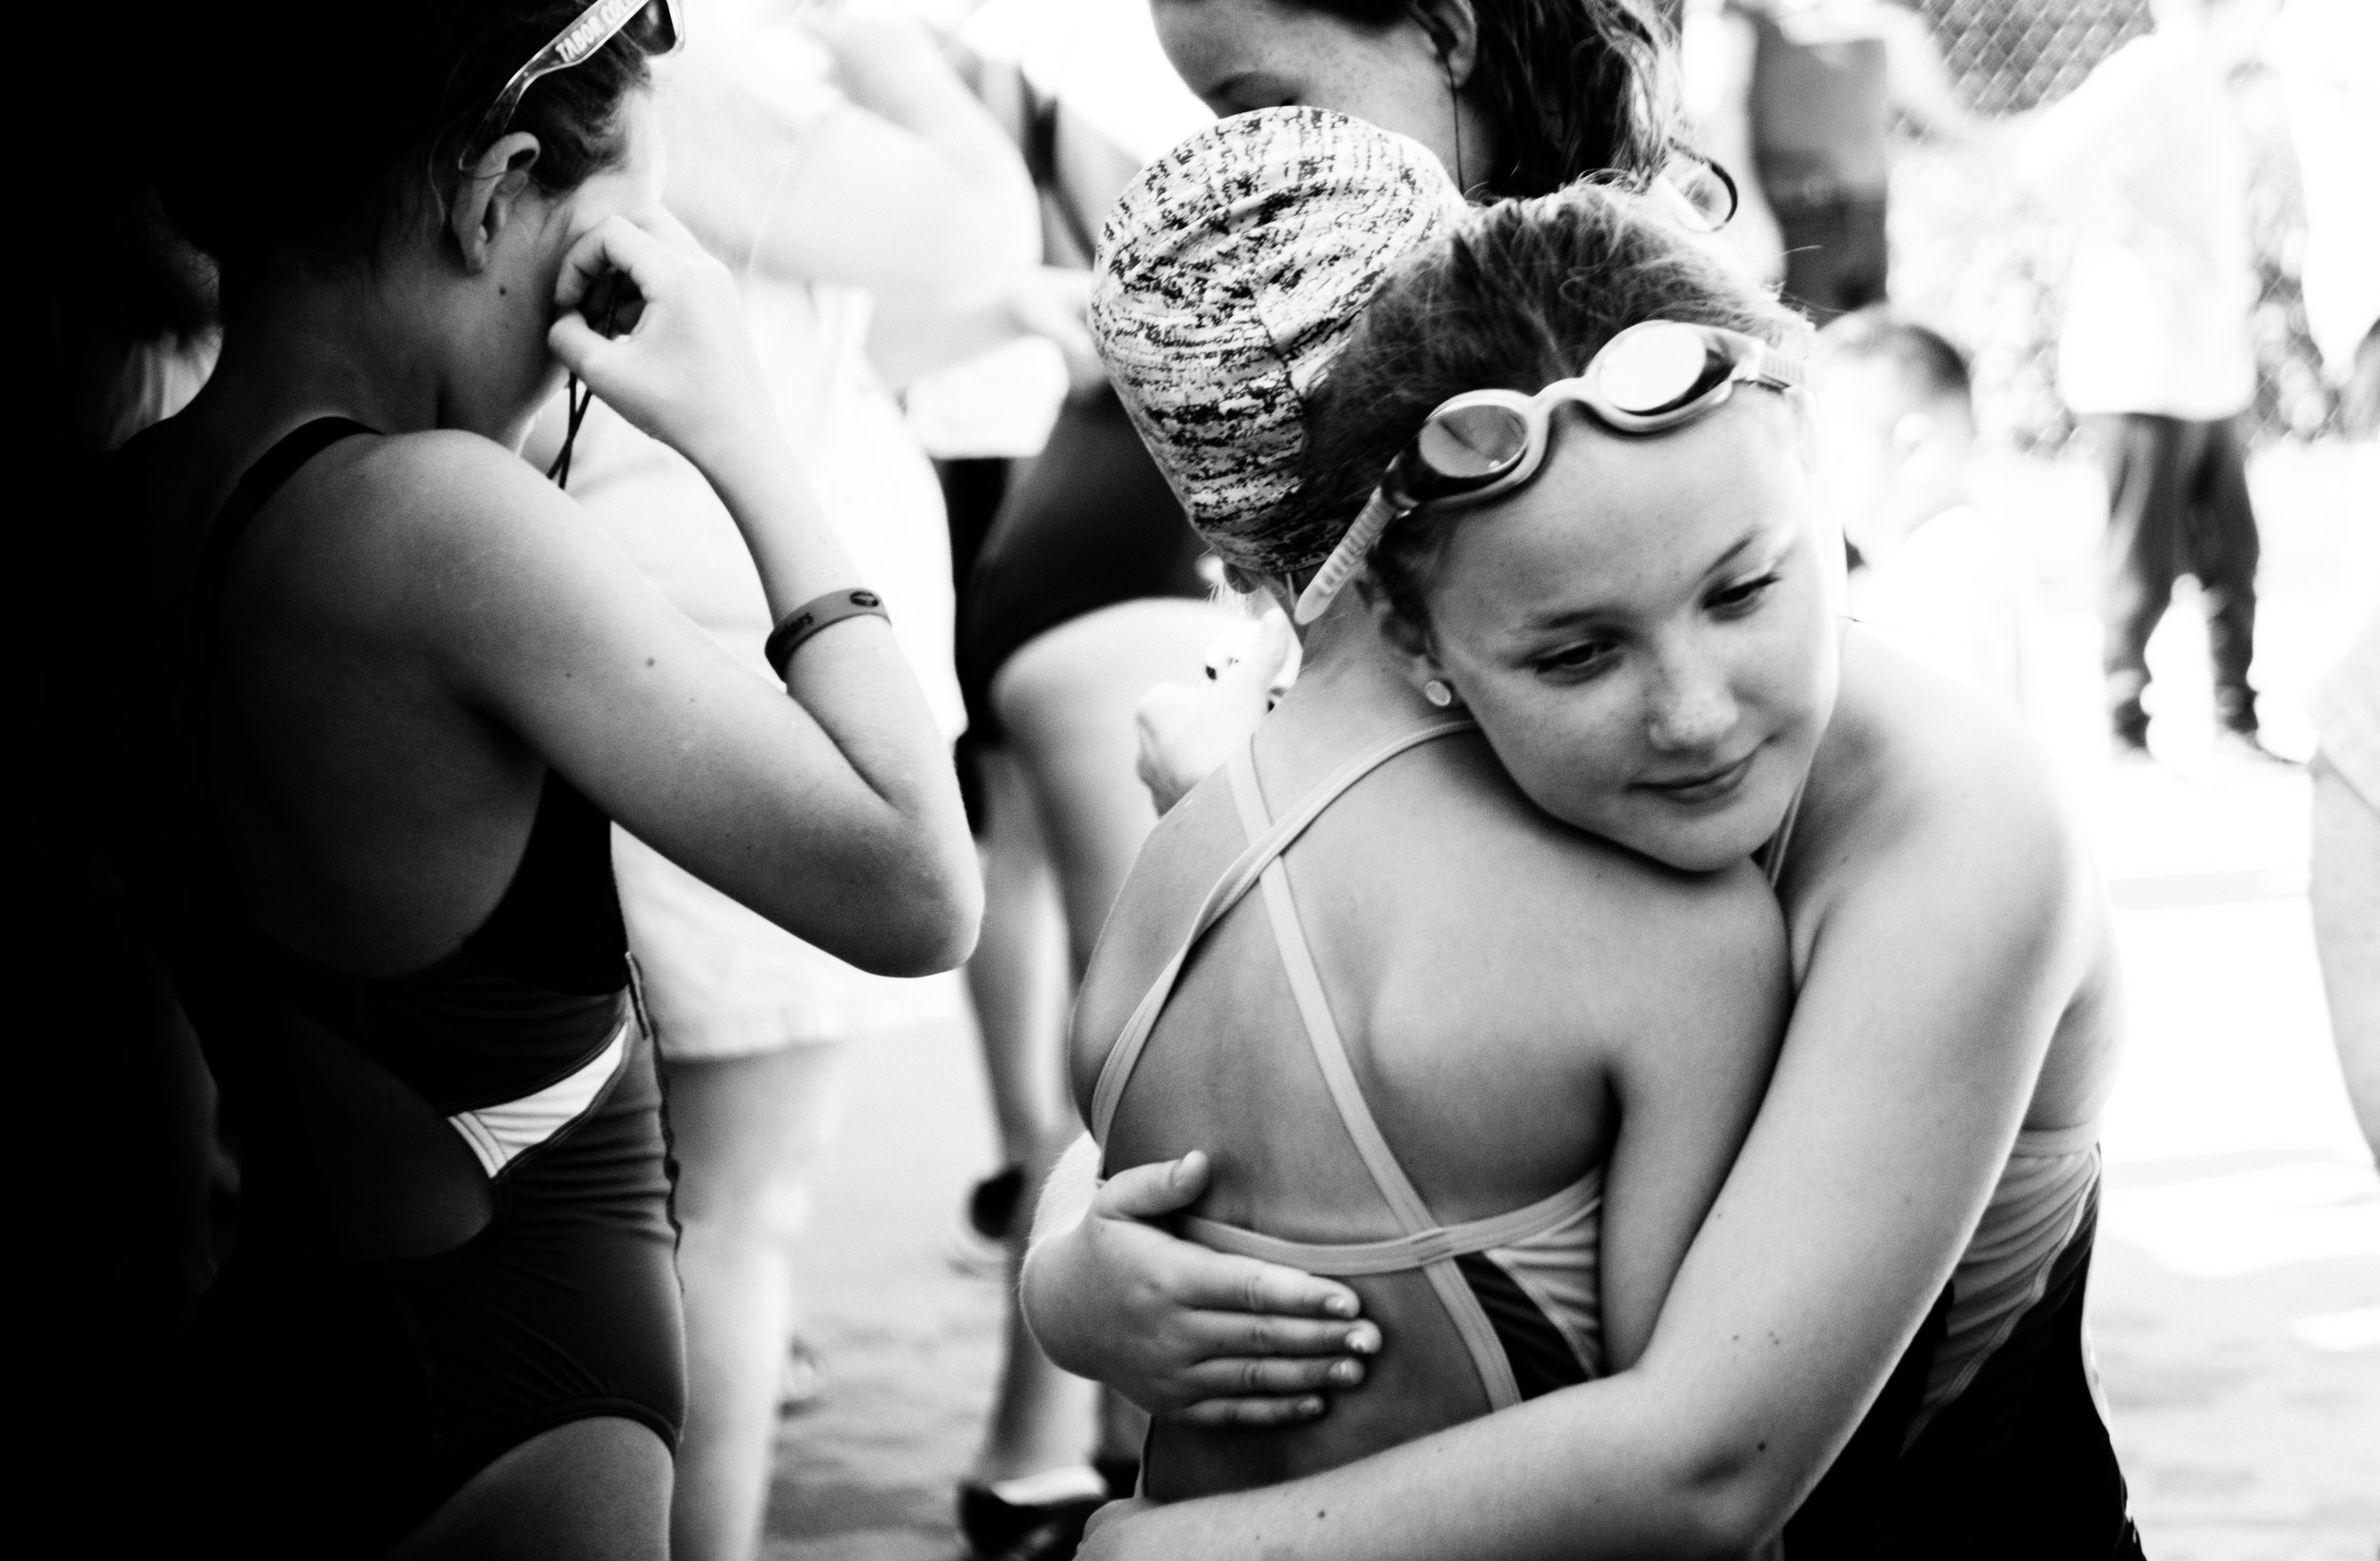 Hugs, encouragement and family time are always part of the recipe for a Wavemakers' swim meet.